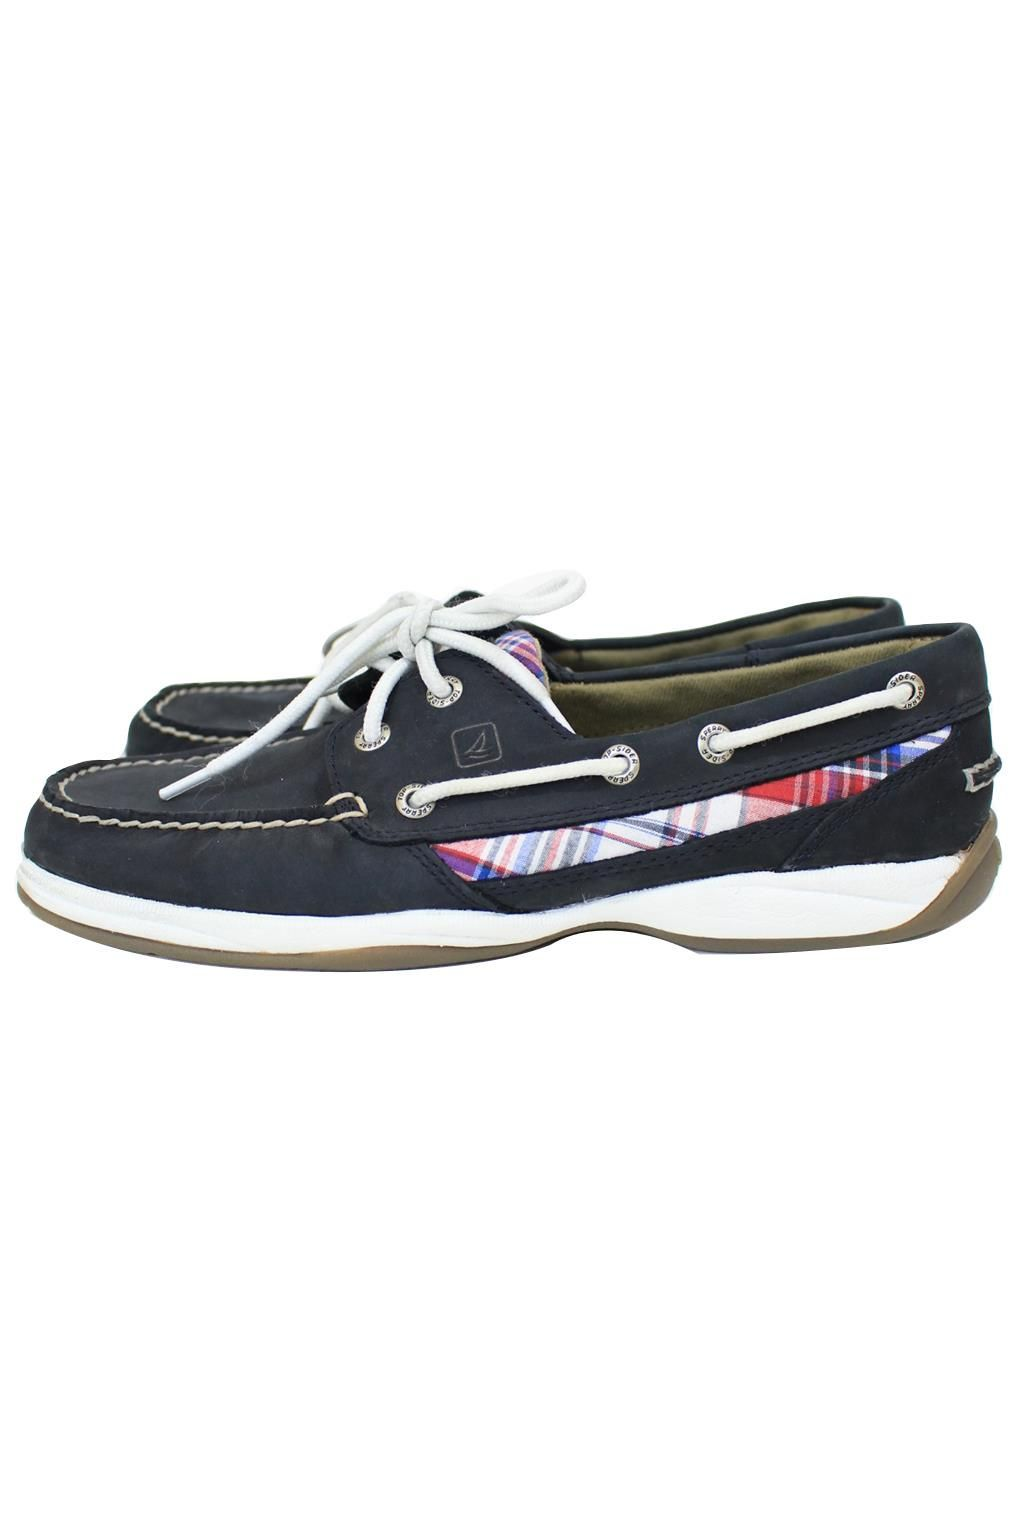 huge discount 2bd15 06d7e Sperry TopSider Navy With Plaid Deck Boat Shoes Size 9.5 Nike Joggeurs, Nike  Huarache,